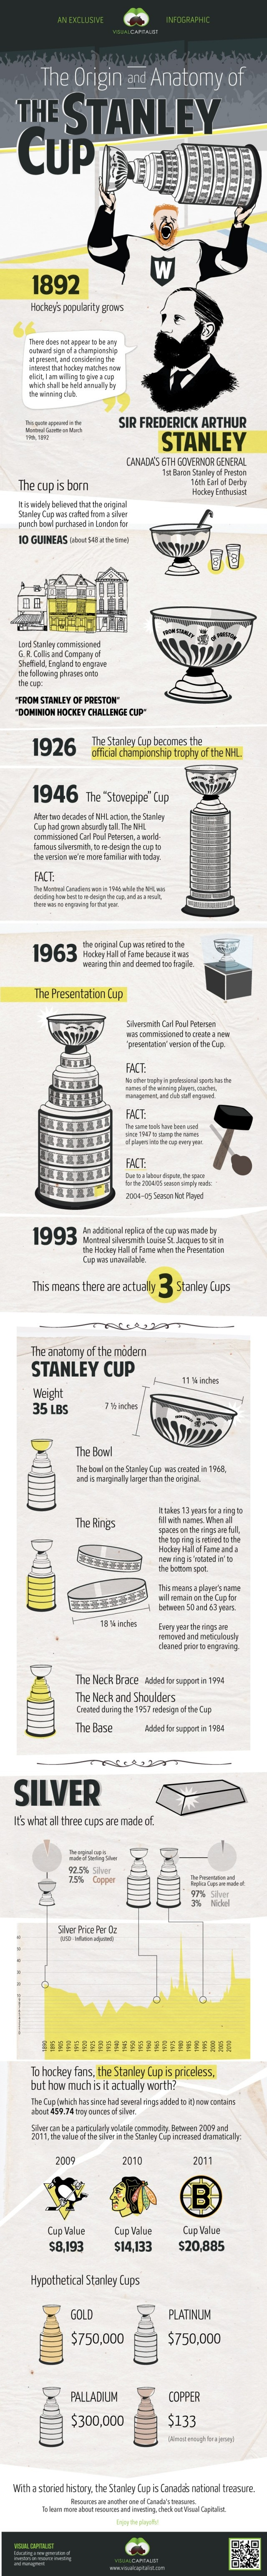 Stanley Cup infographic. Coolness!